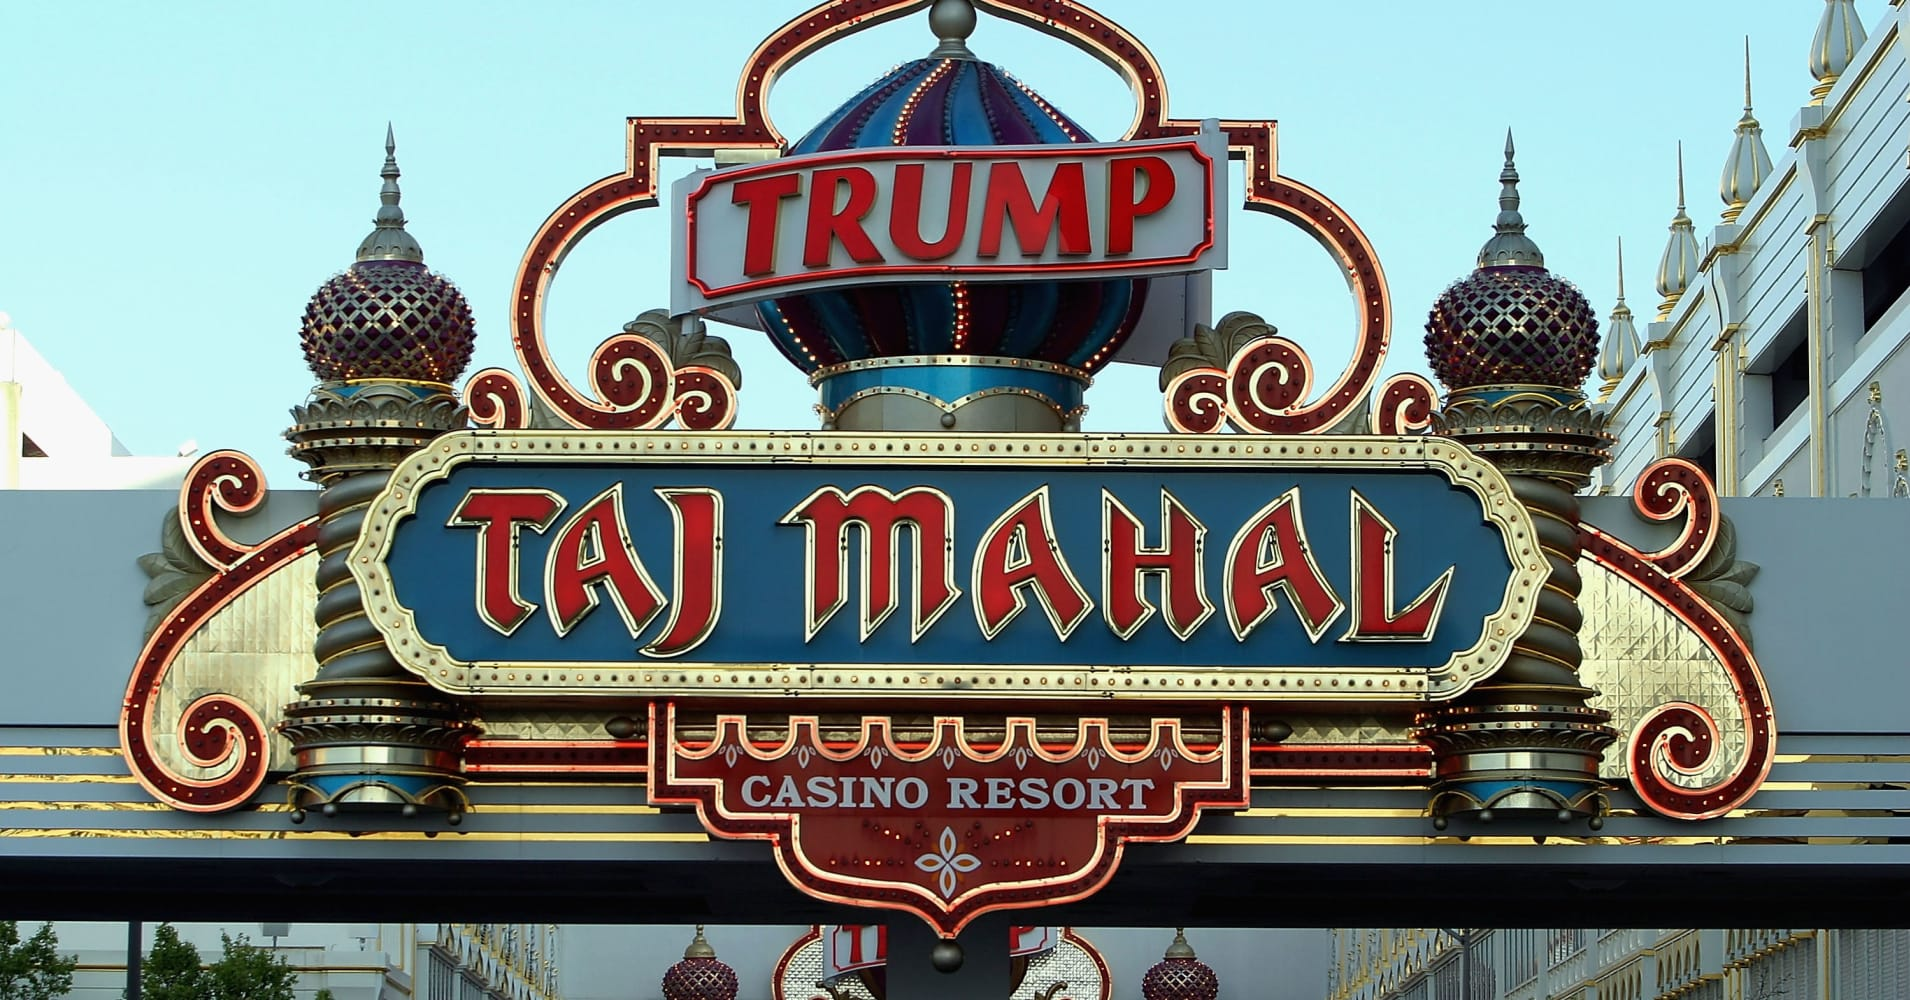 Trump casino resort sega casino for nds